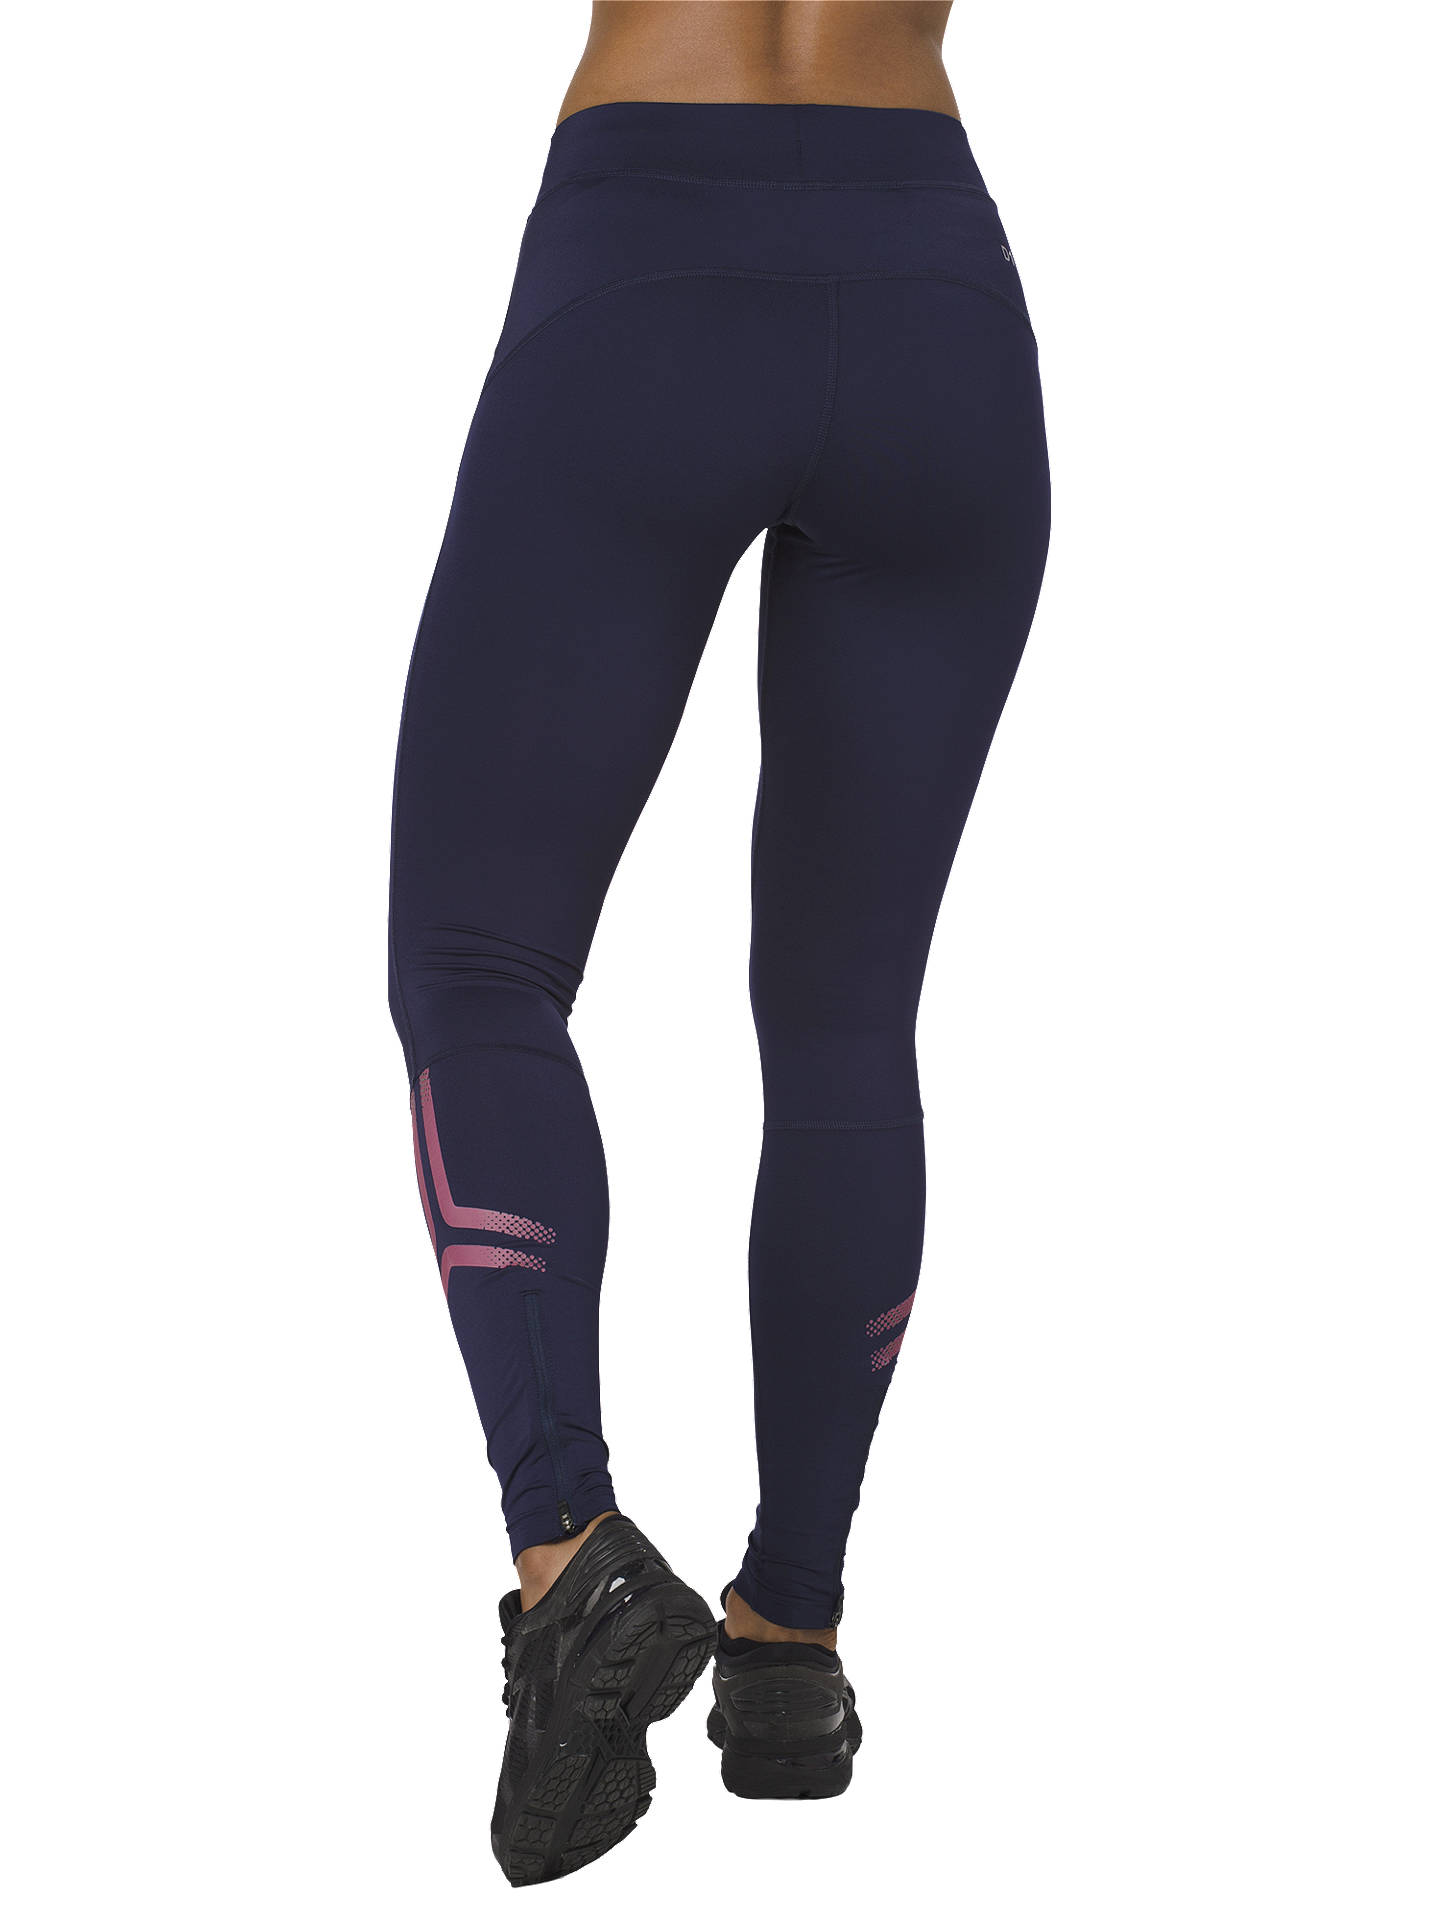 BuyASICS Icon Running Tights, Peatcoat/Pixel Pink, S Online at johnlewis.com